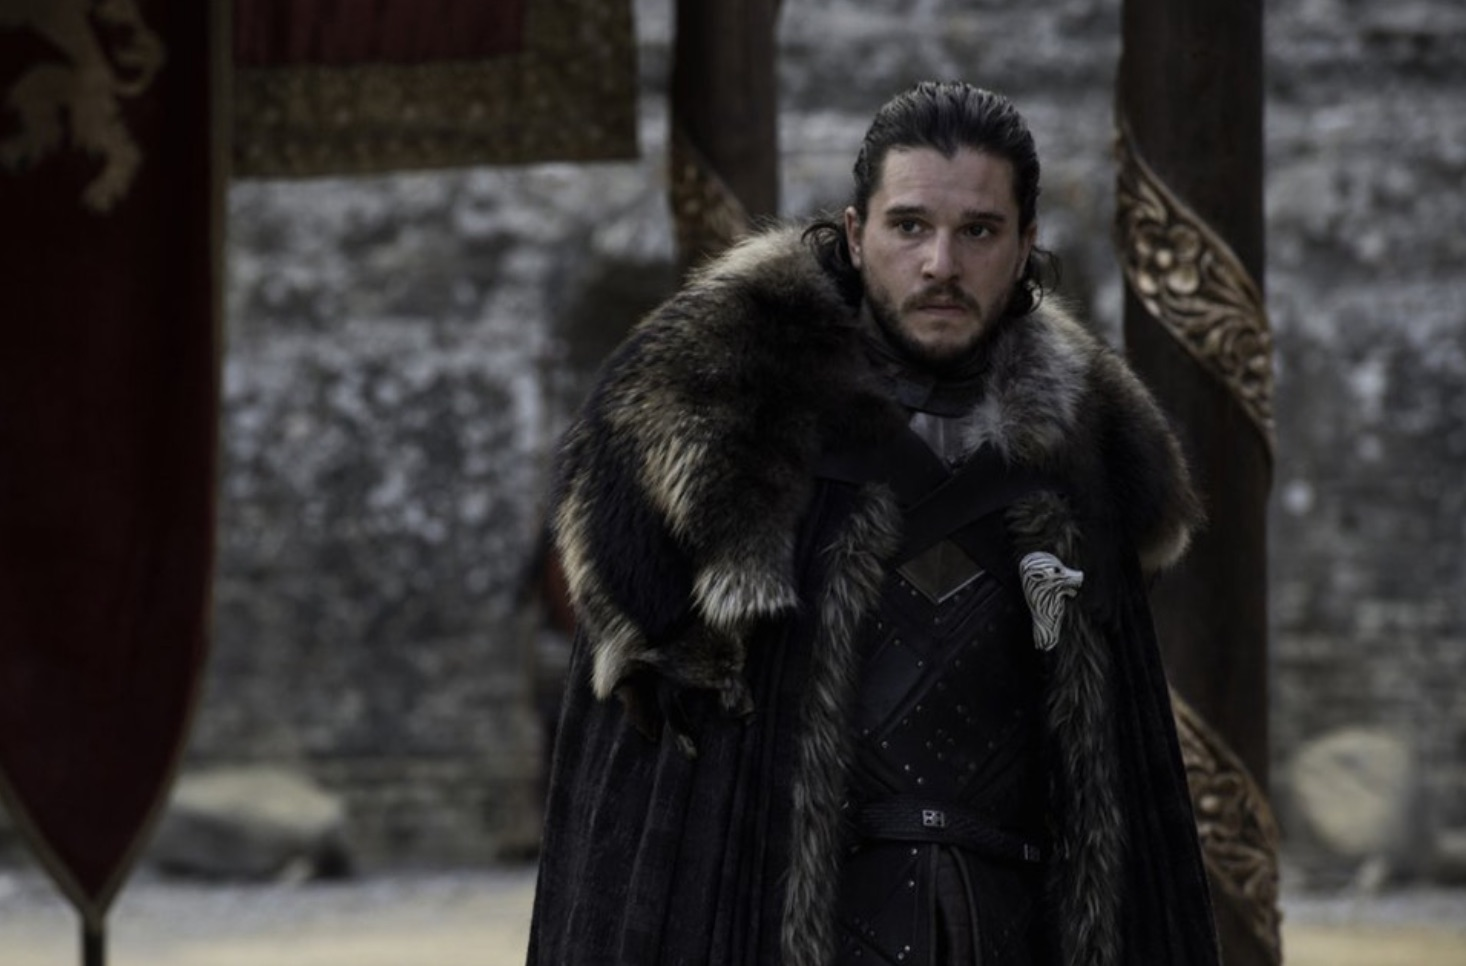 'Game of Thrones' Season 7 finale: Jon Snow's mystery revealed